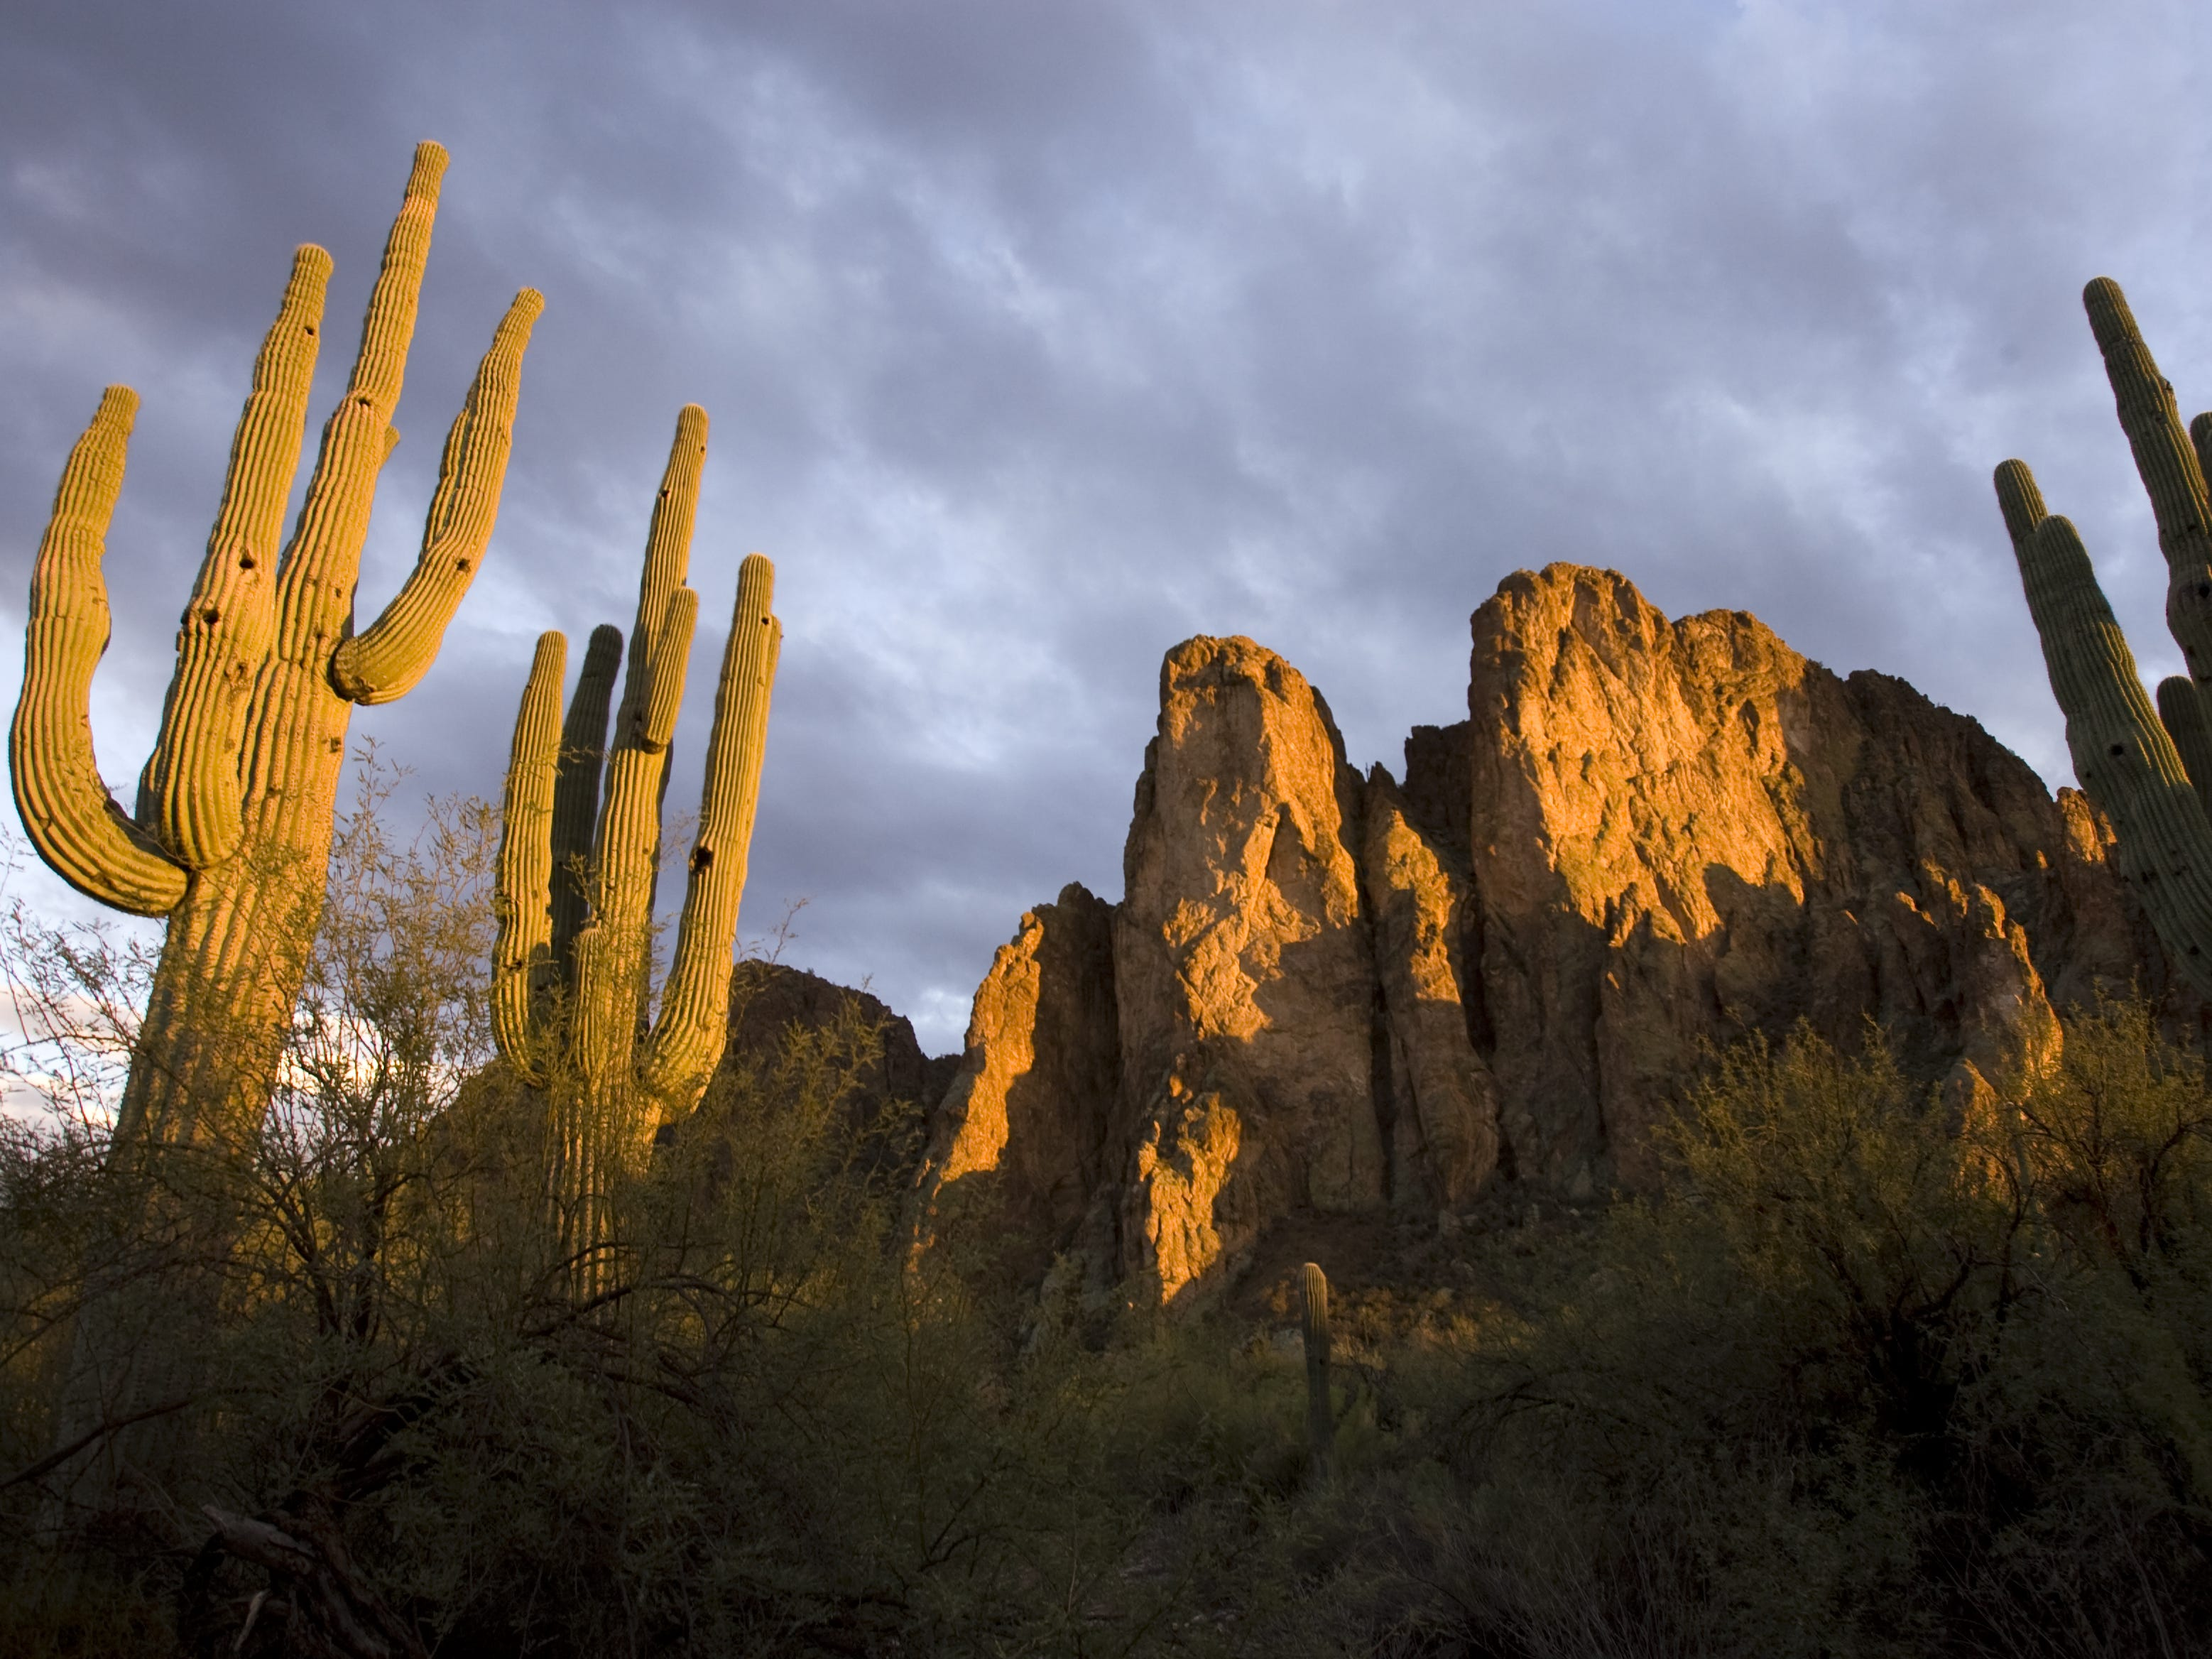 Saguaros frame the Bulldog Cliffs in the early evening light at the Saguaro Lake Ranch Resort off of Bush Highway  in unincorporated Maricopa County on December 8, 2007.